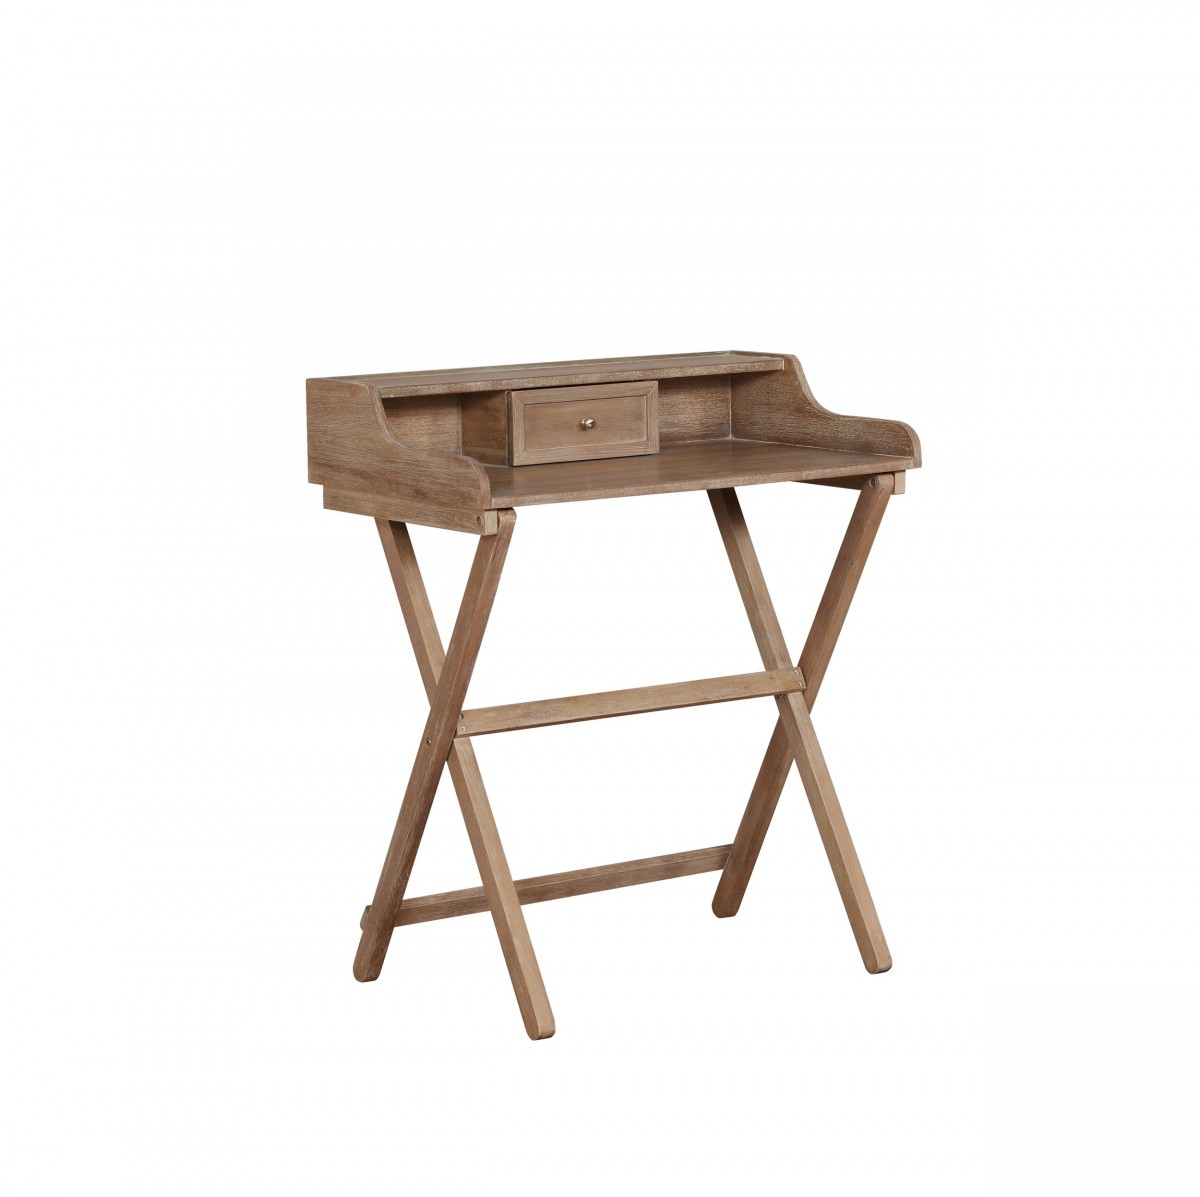 Home Decor Products Inc: Linon Home Decor Products Inc. Coy Gray Wash Folding Desk